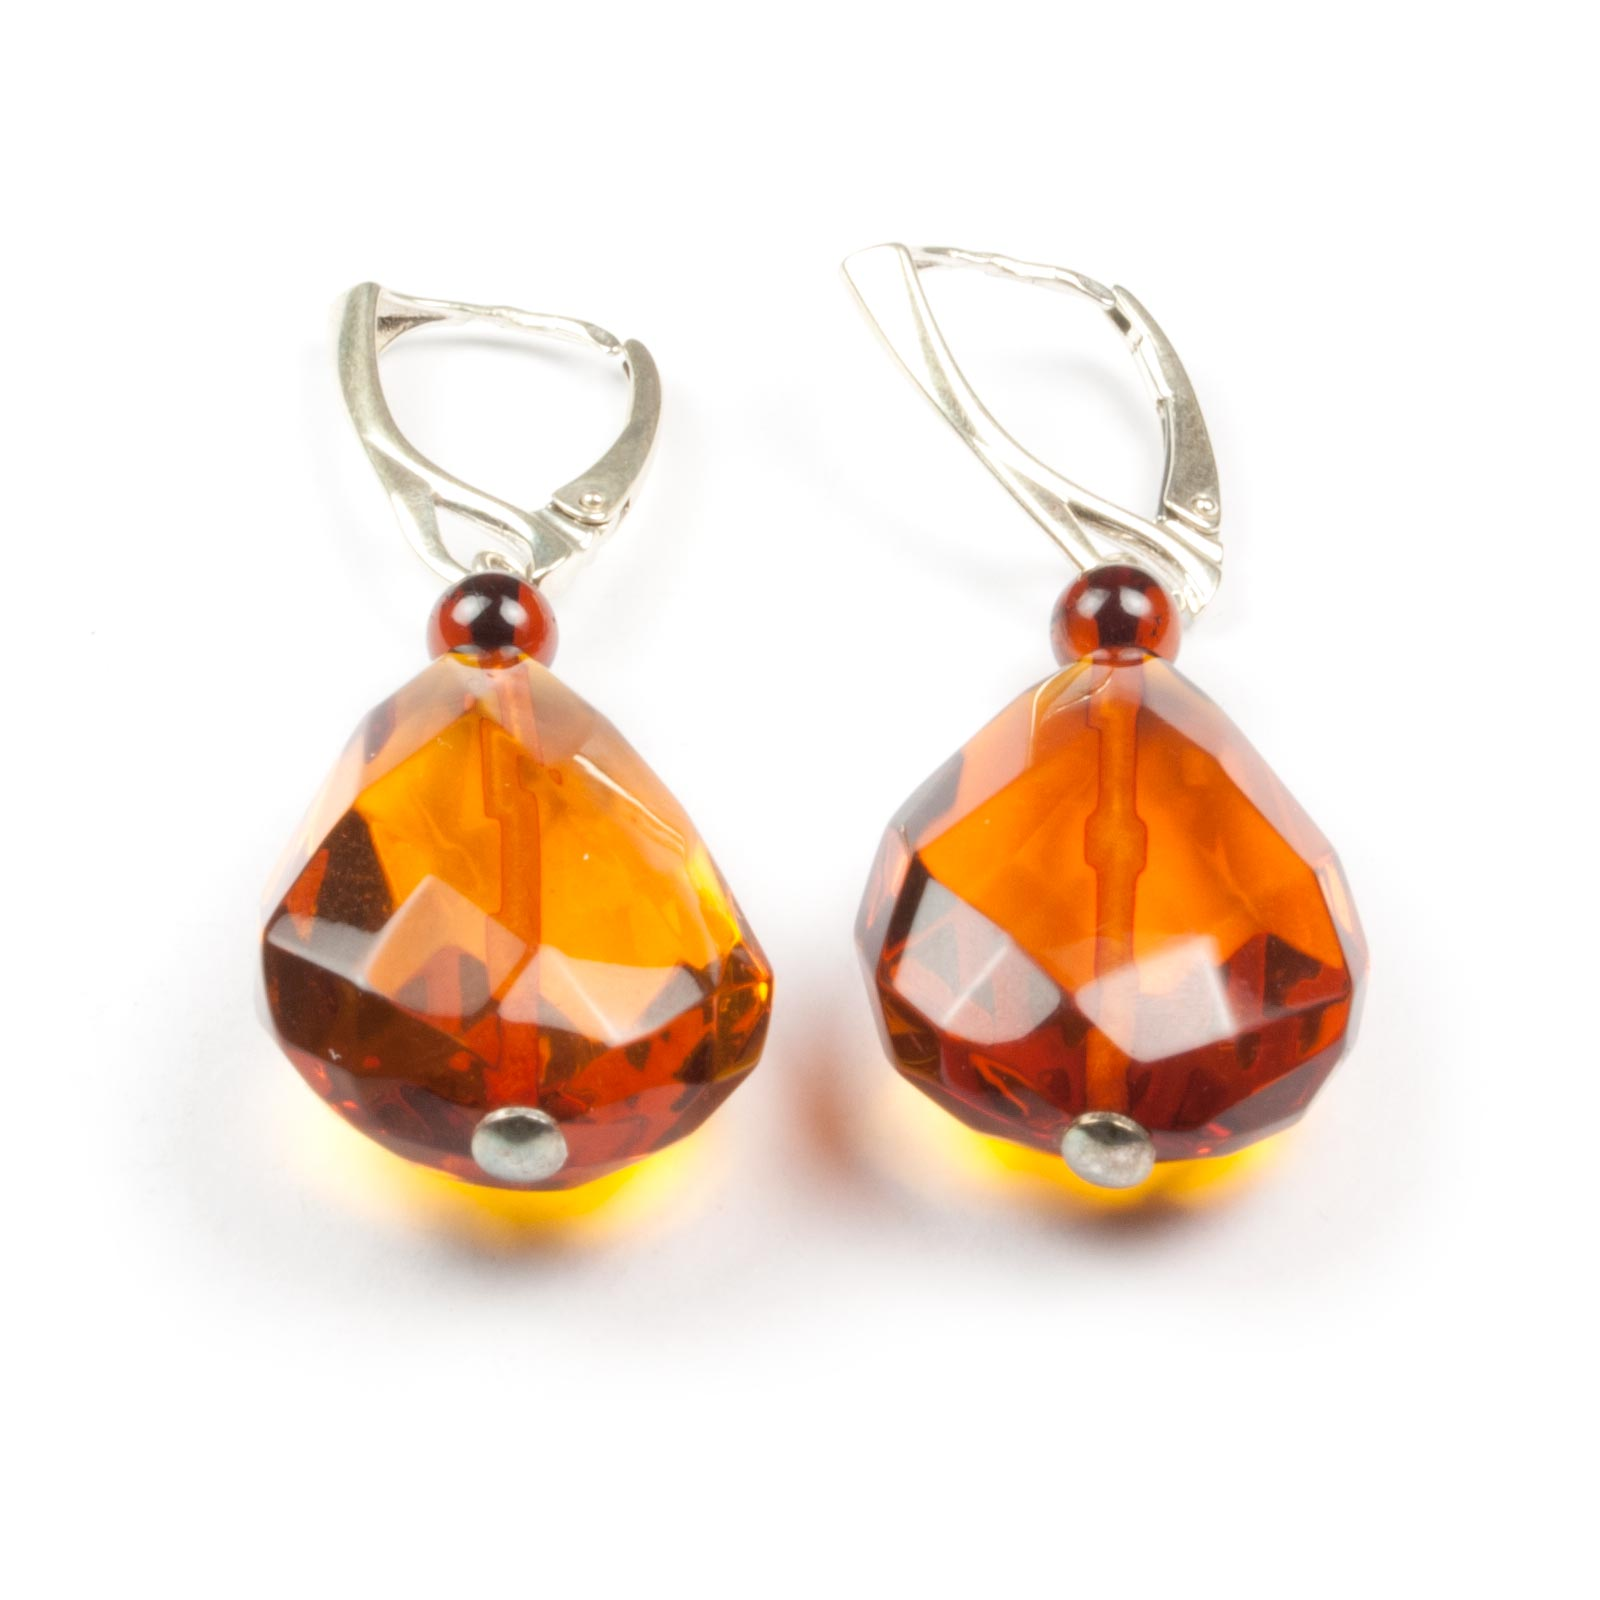 "Natural Baltic Amber Earrings with Silver Clasp ""Veiling"""